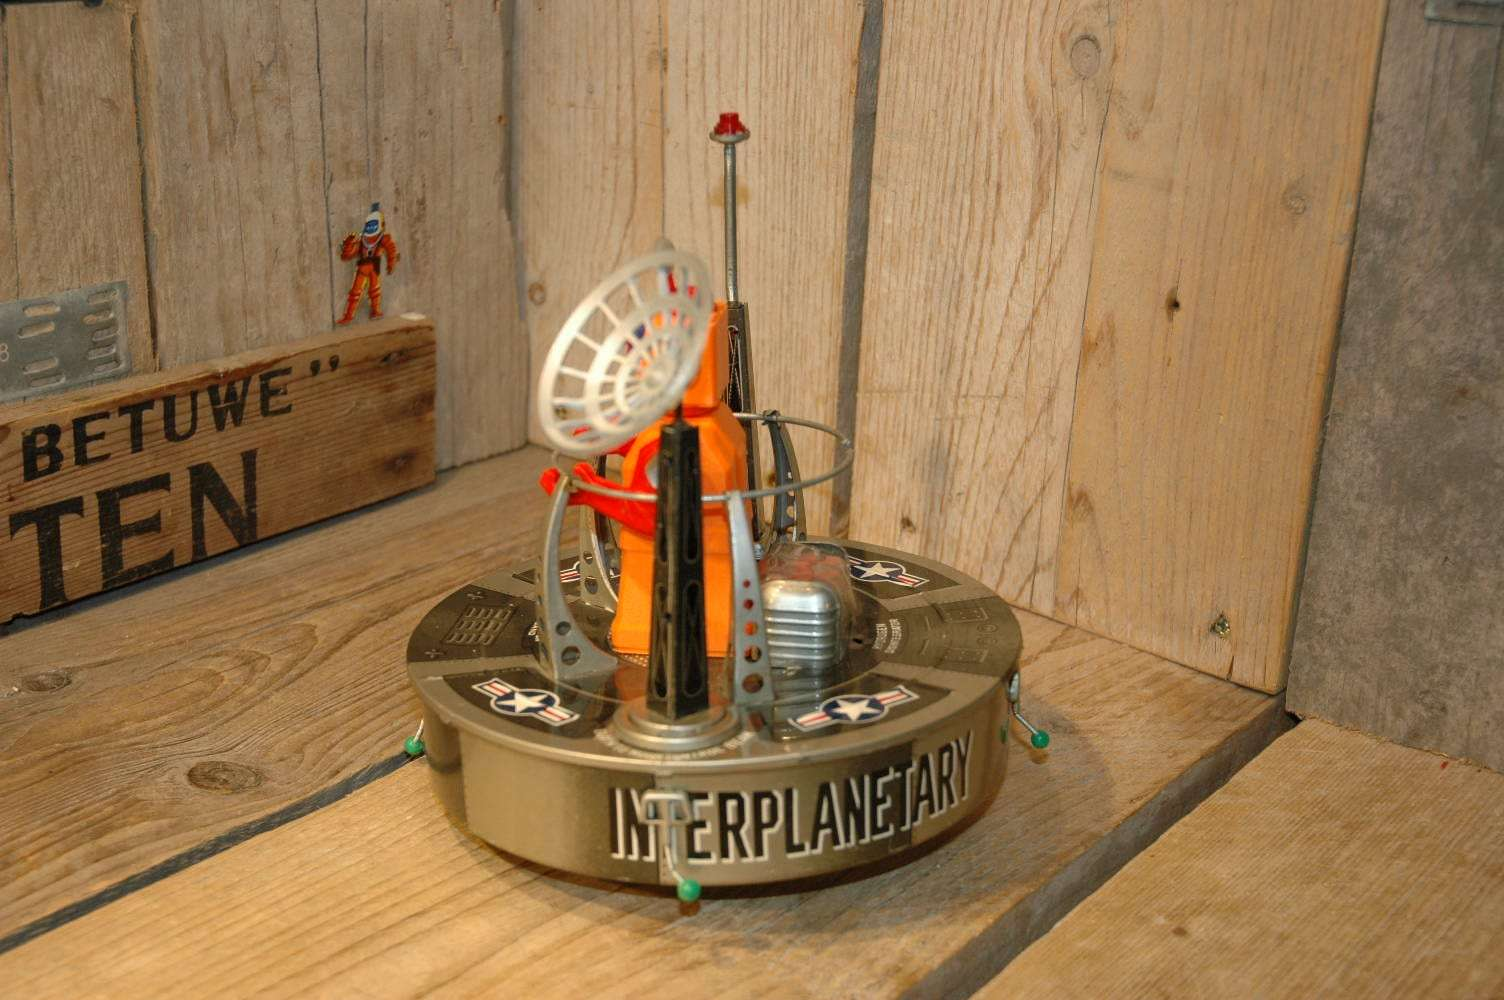 VST / Linemar - Interplanetary Space Platform with Realistic Robot